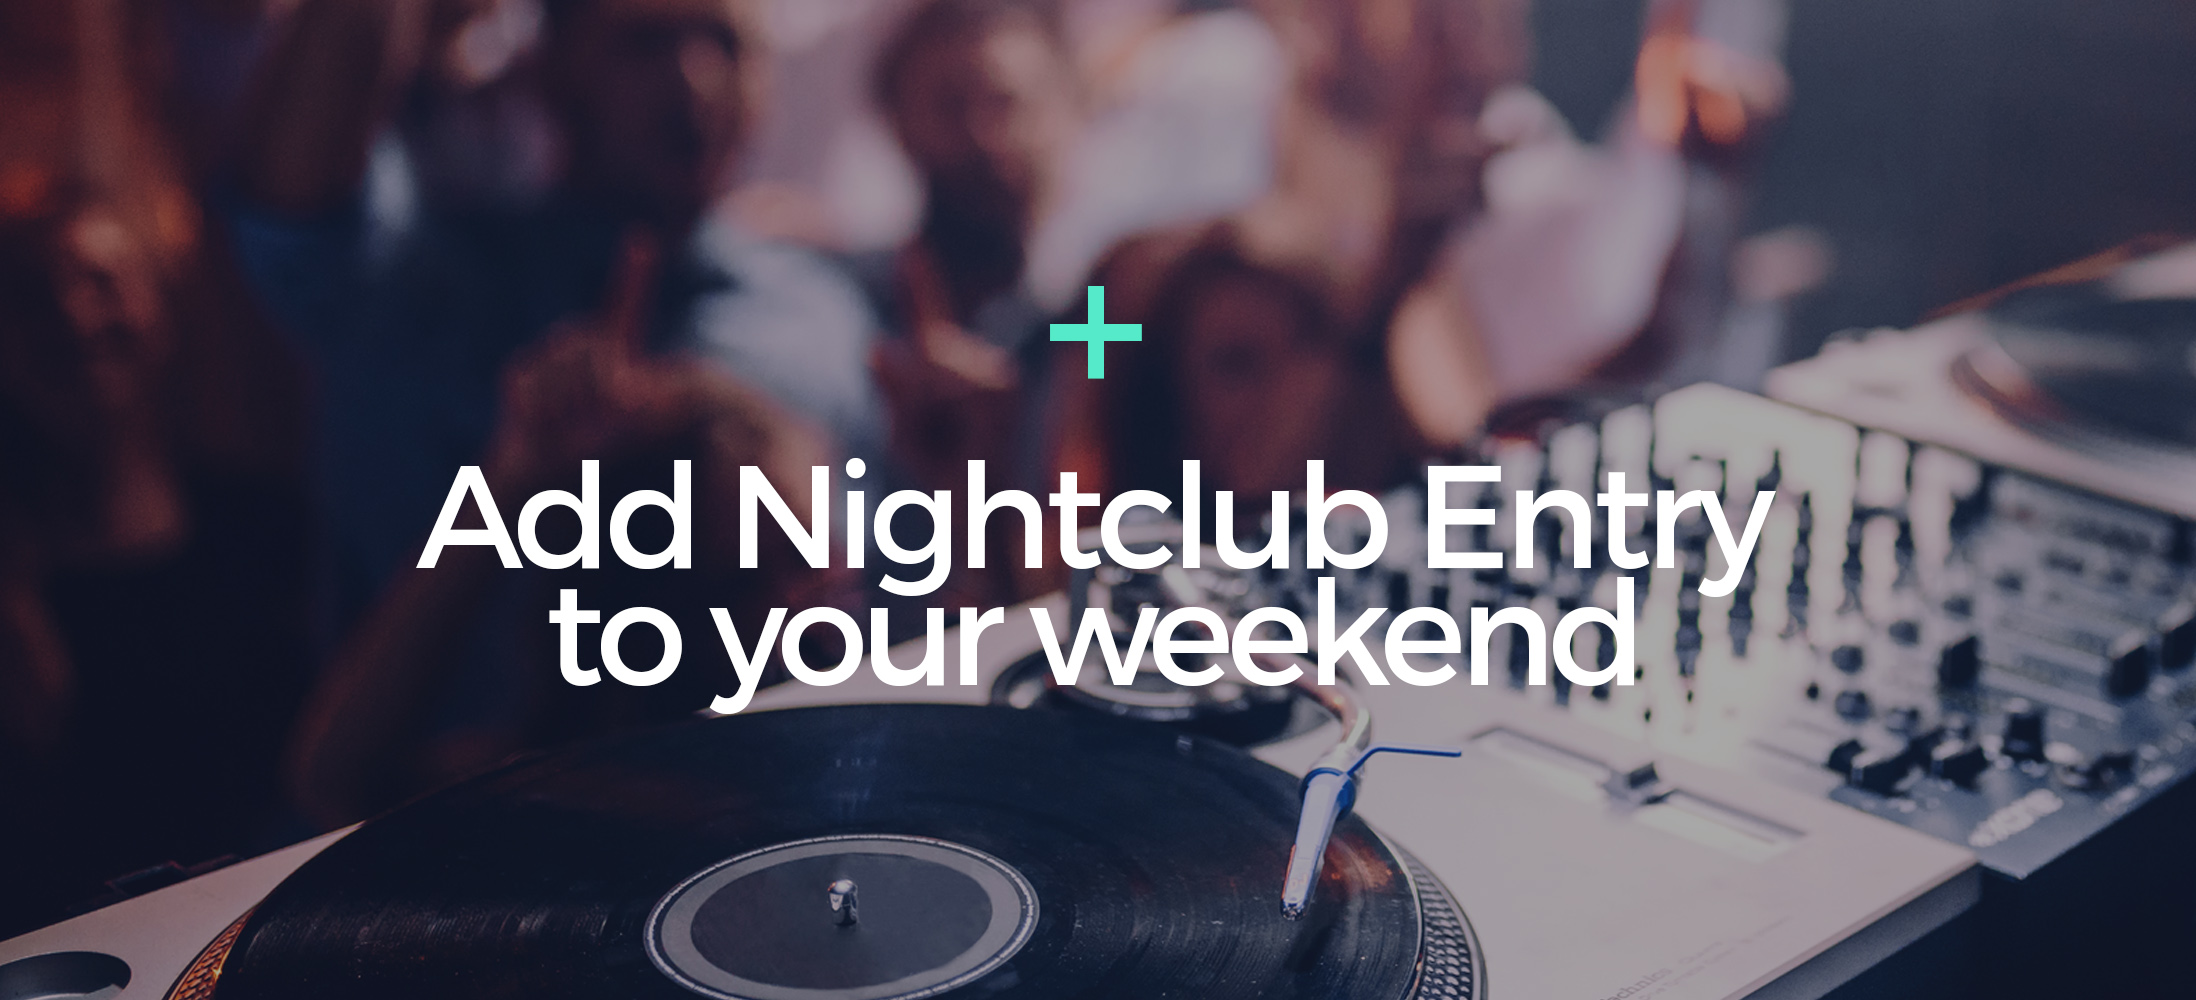 Add Nightclub Entry to your Weekend